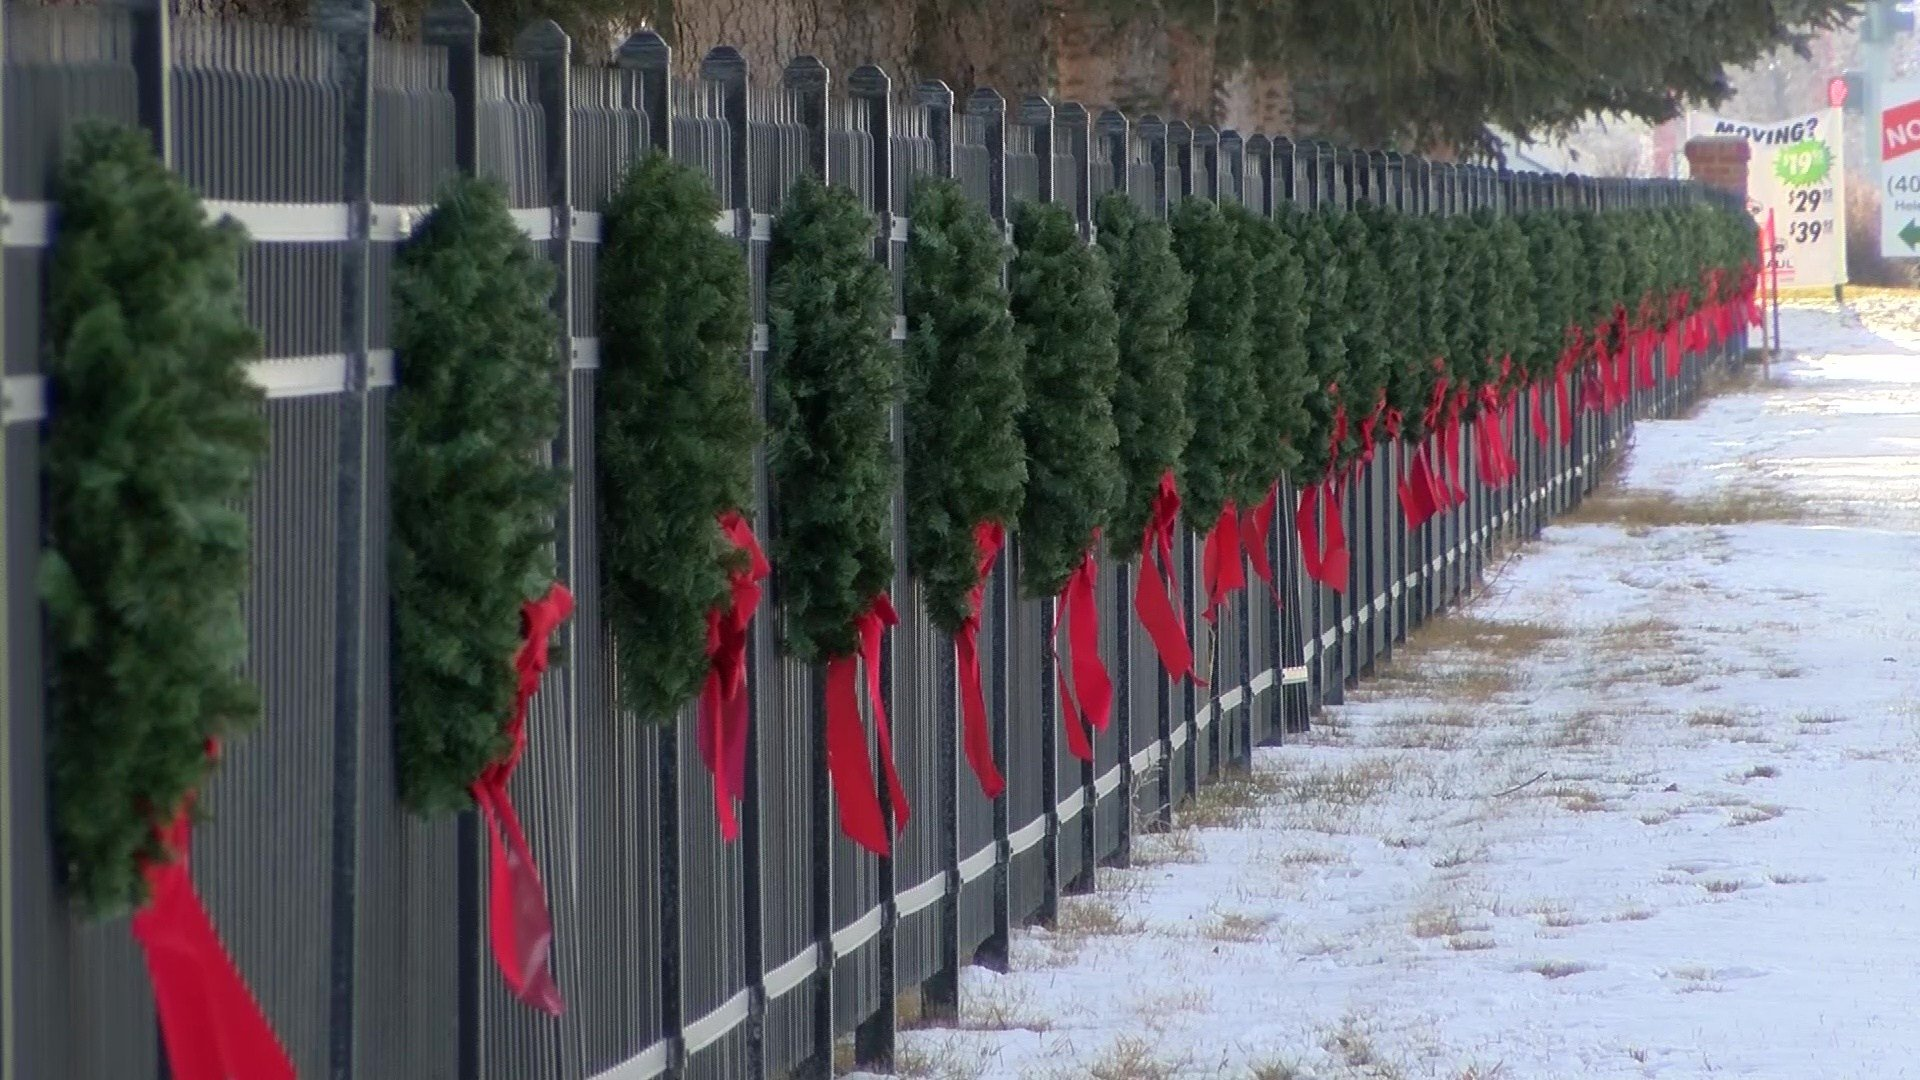 The wreaths were placed by The Montana Field of Honor and represent all Montana veterans